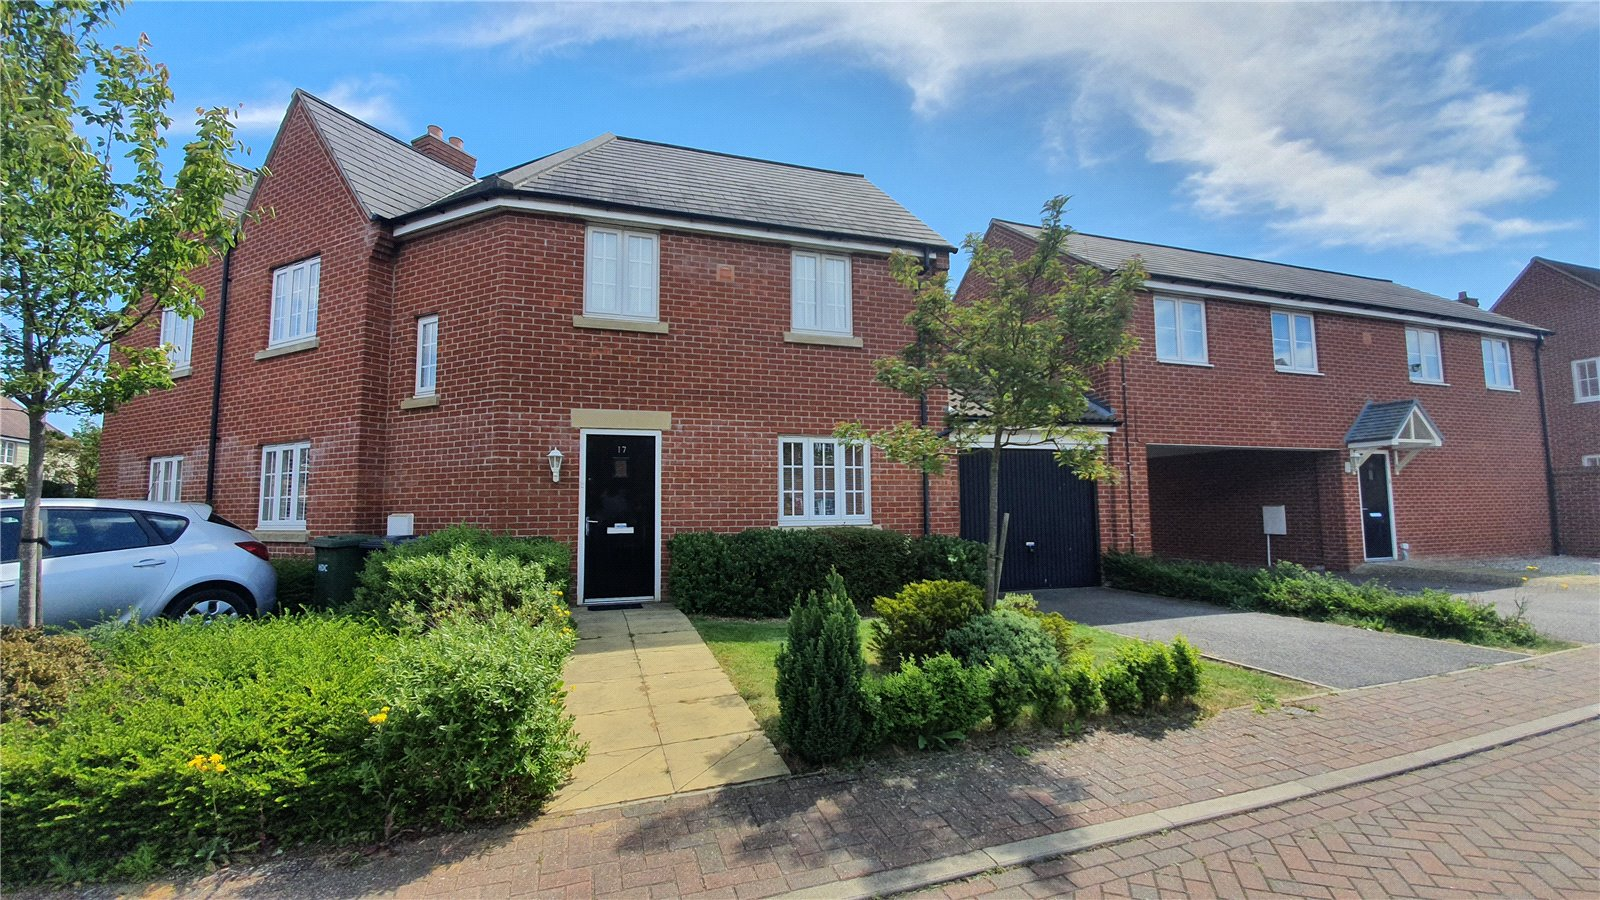 3 bed house for sale in Dixy Close, St. Neots 0